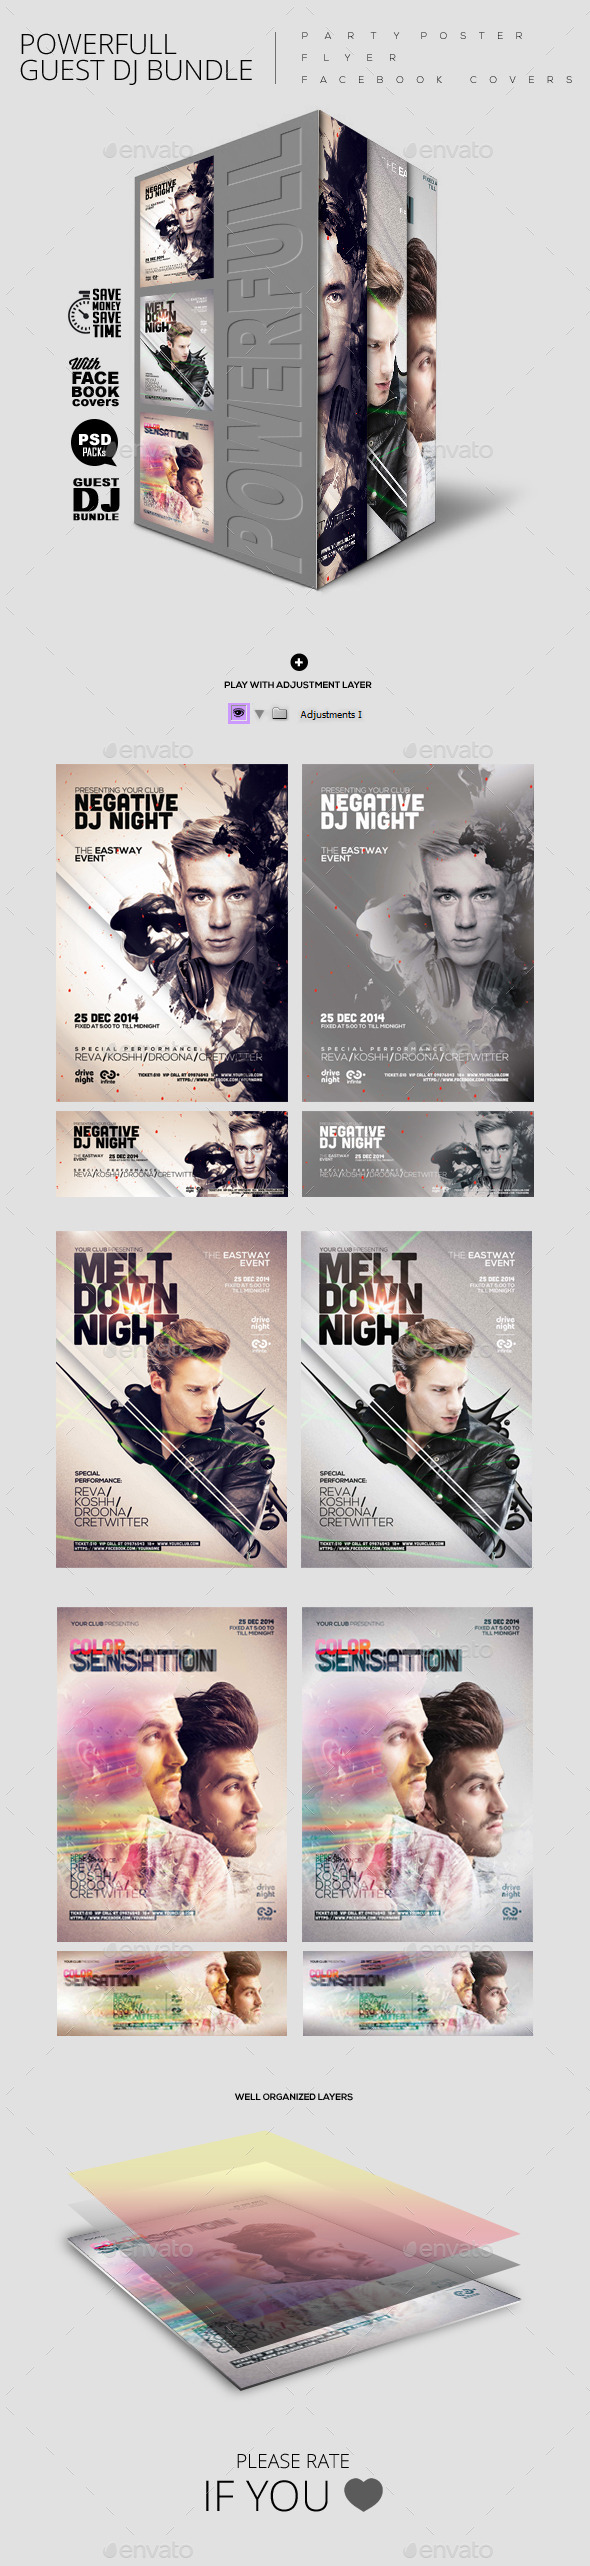 Bundle of Guest Dj Party Poster/ Flyer/ Facebook C - Clubs & Parties Events